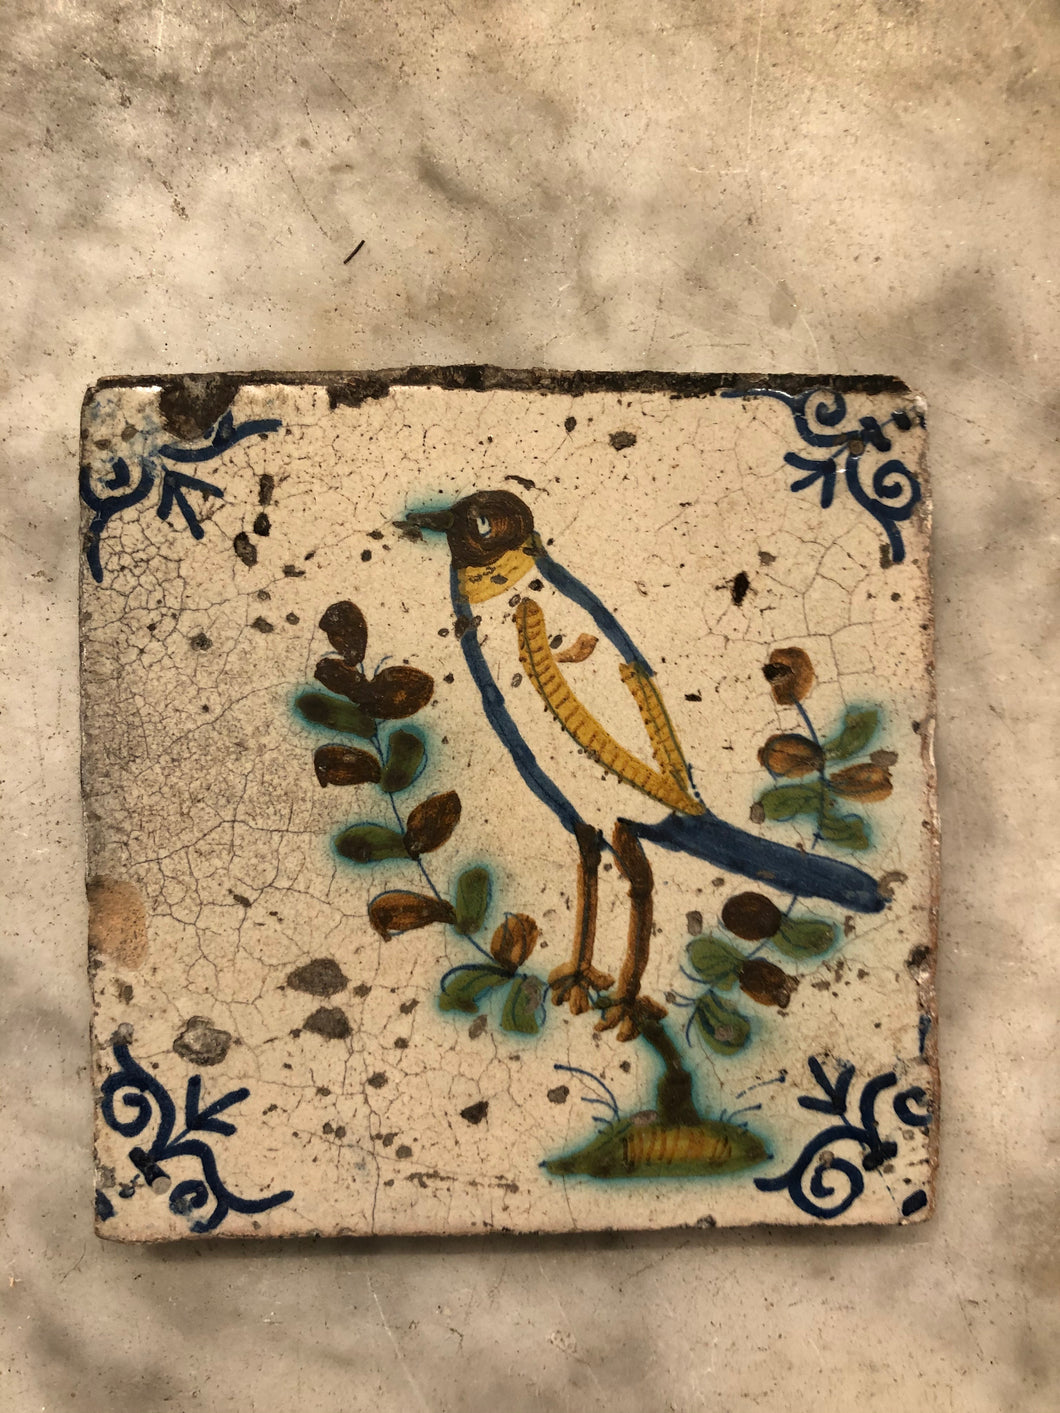 17 th century delft tile with polychrome bird